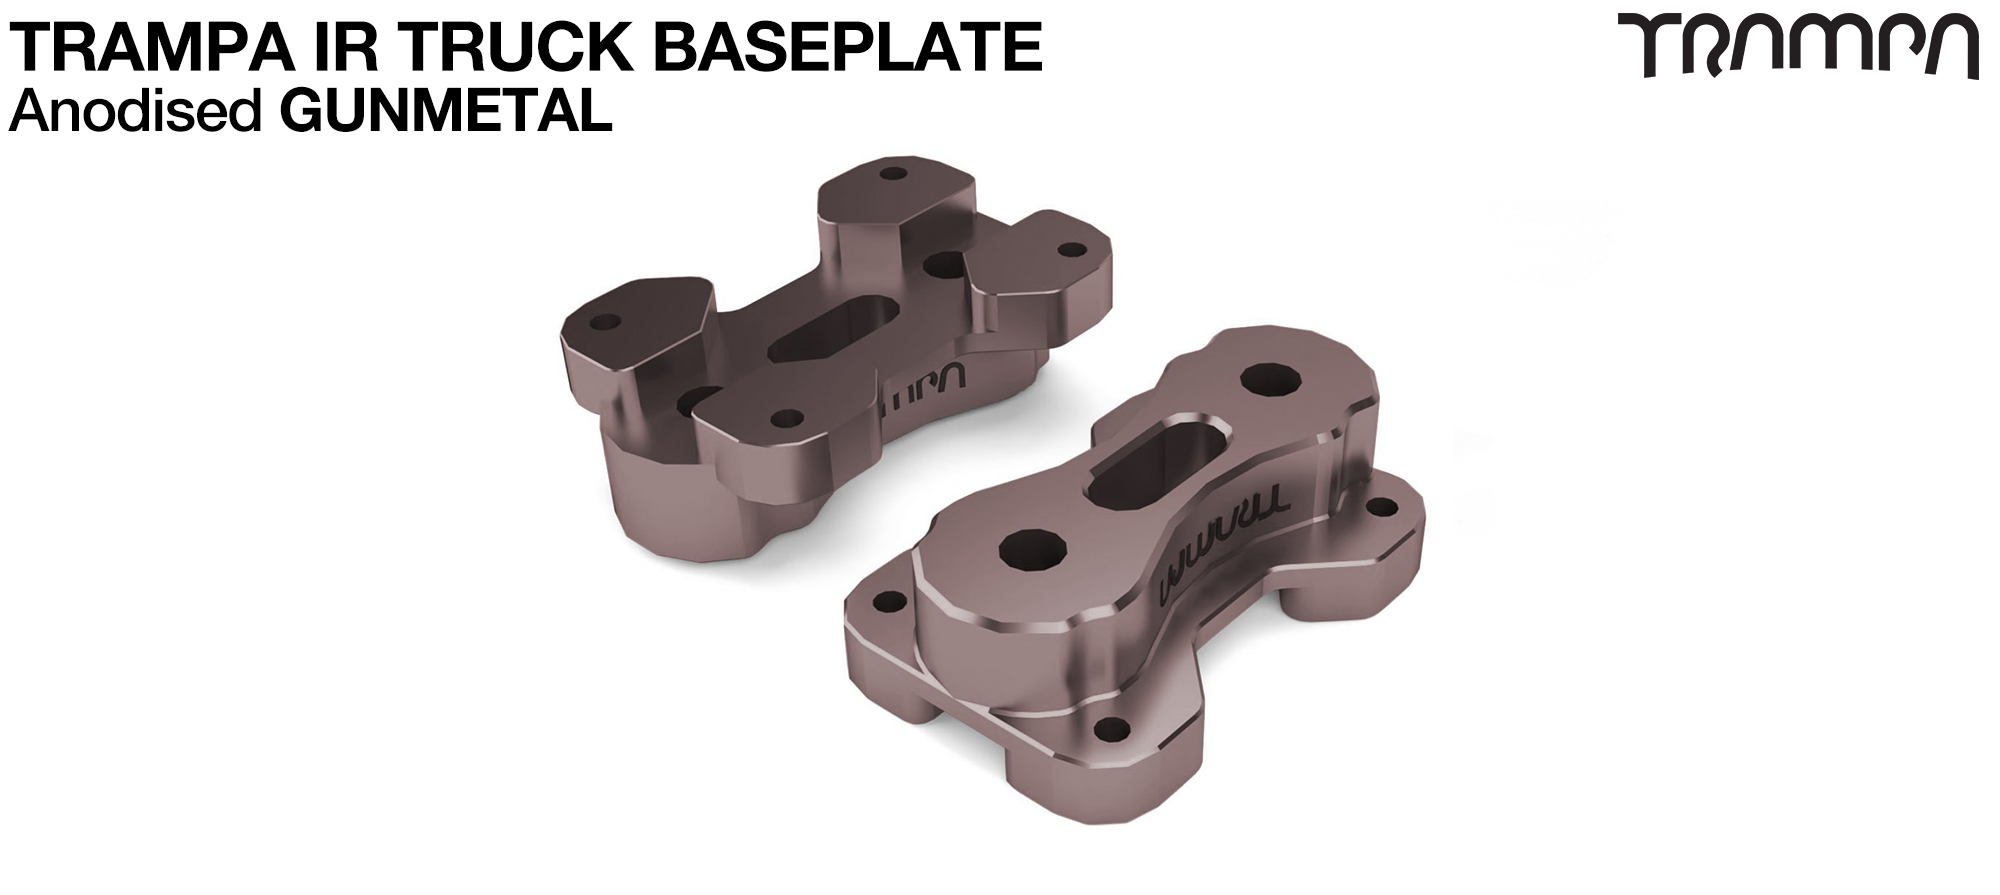 TRAMPA IR BASEPLATE - CNC Precision made TRAMPA IR Trucks are super light & Packed with performance - GUNMETAL